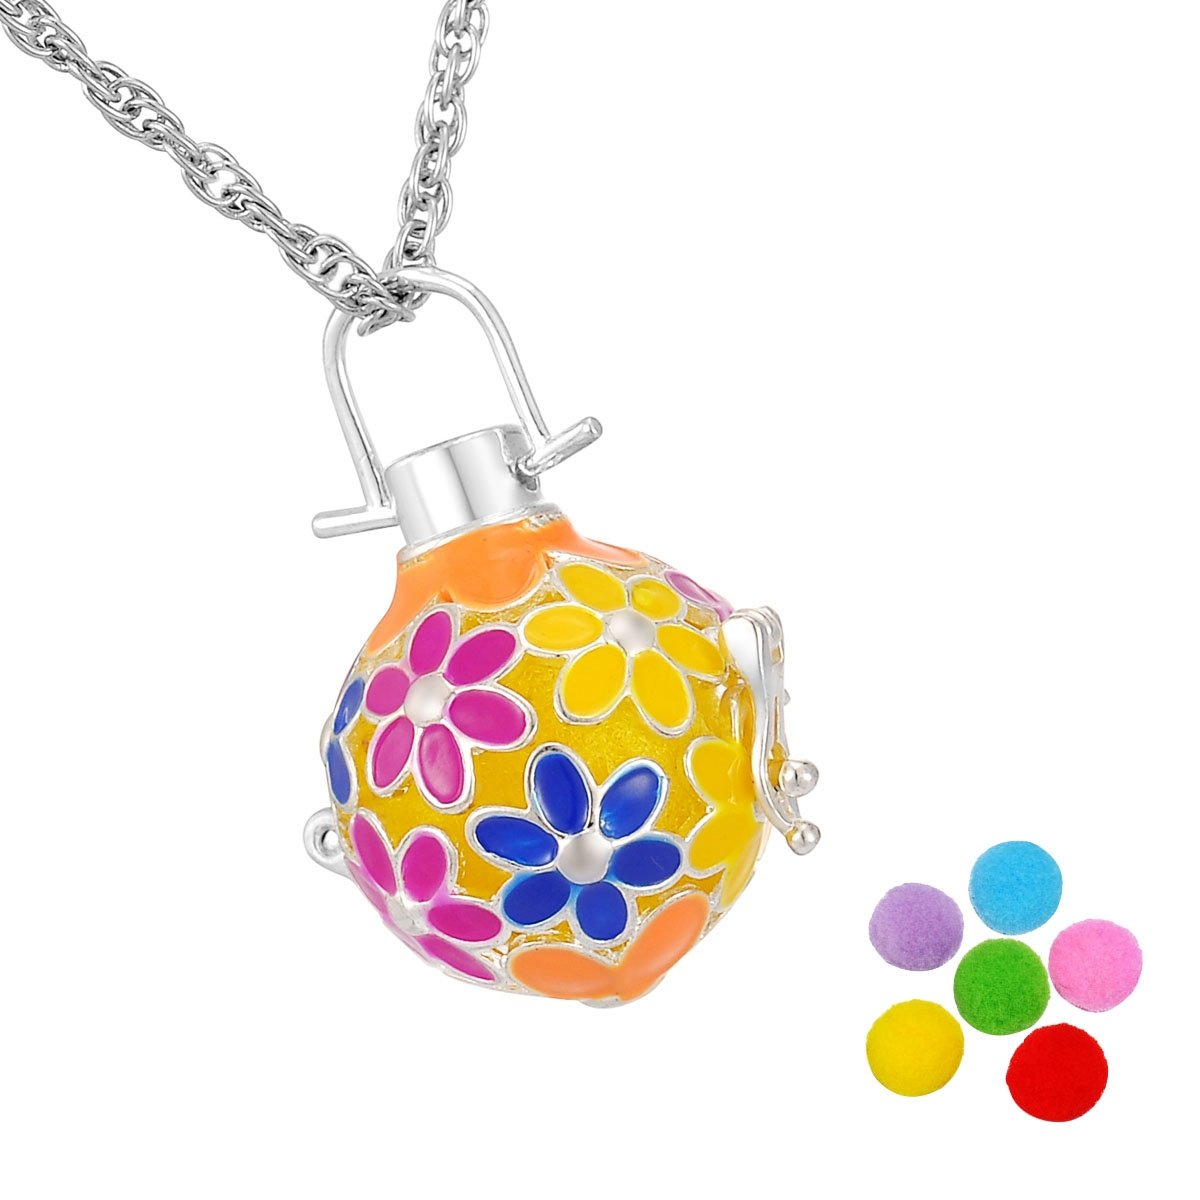 HooAMI Flower Essential Oils Aromatherapy Diffuser Locket Necklace